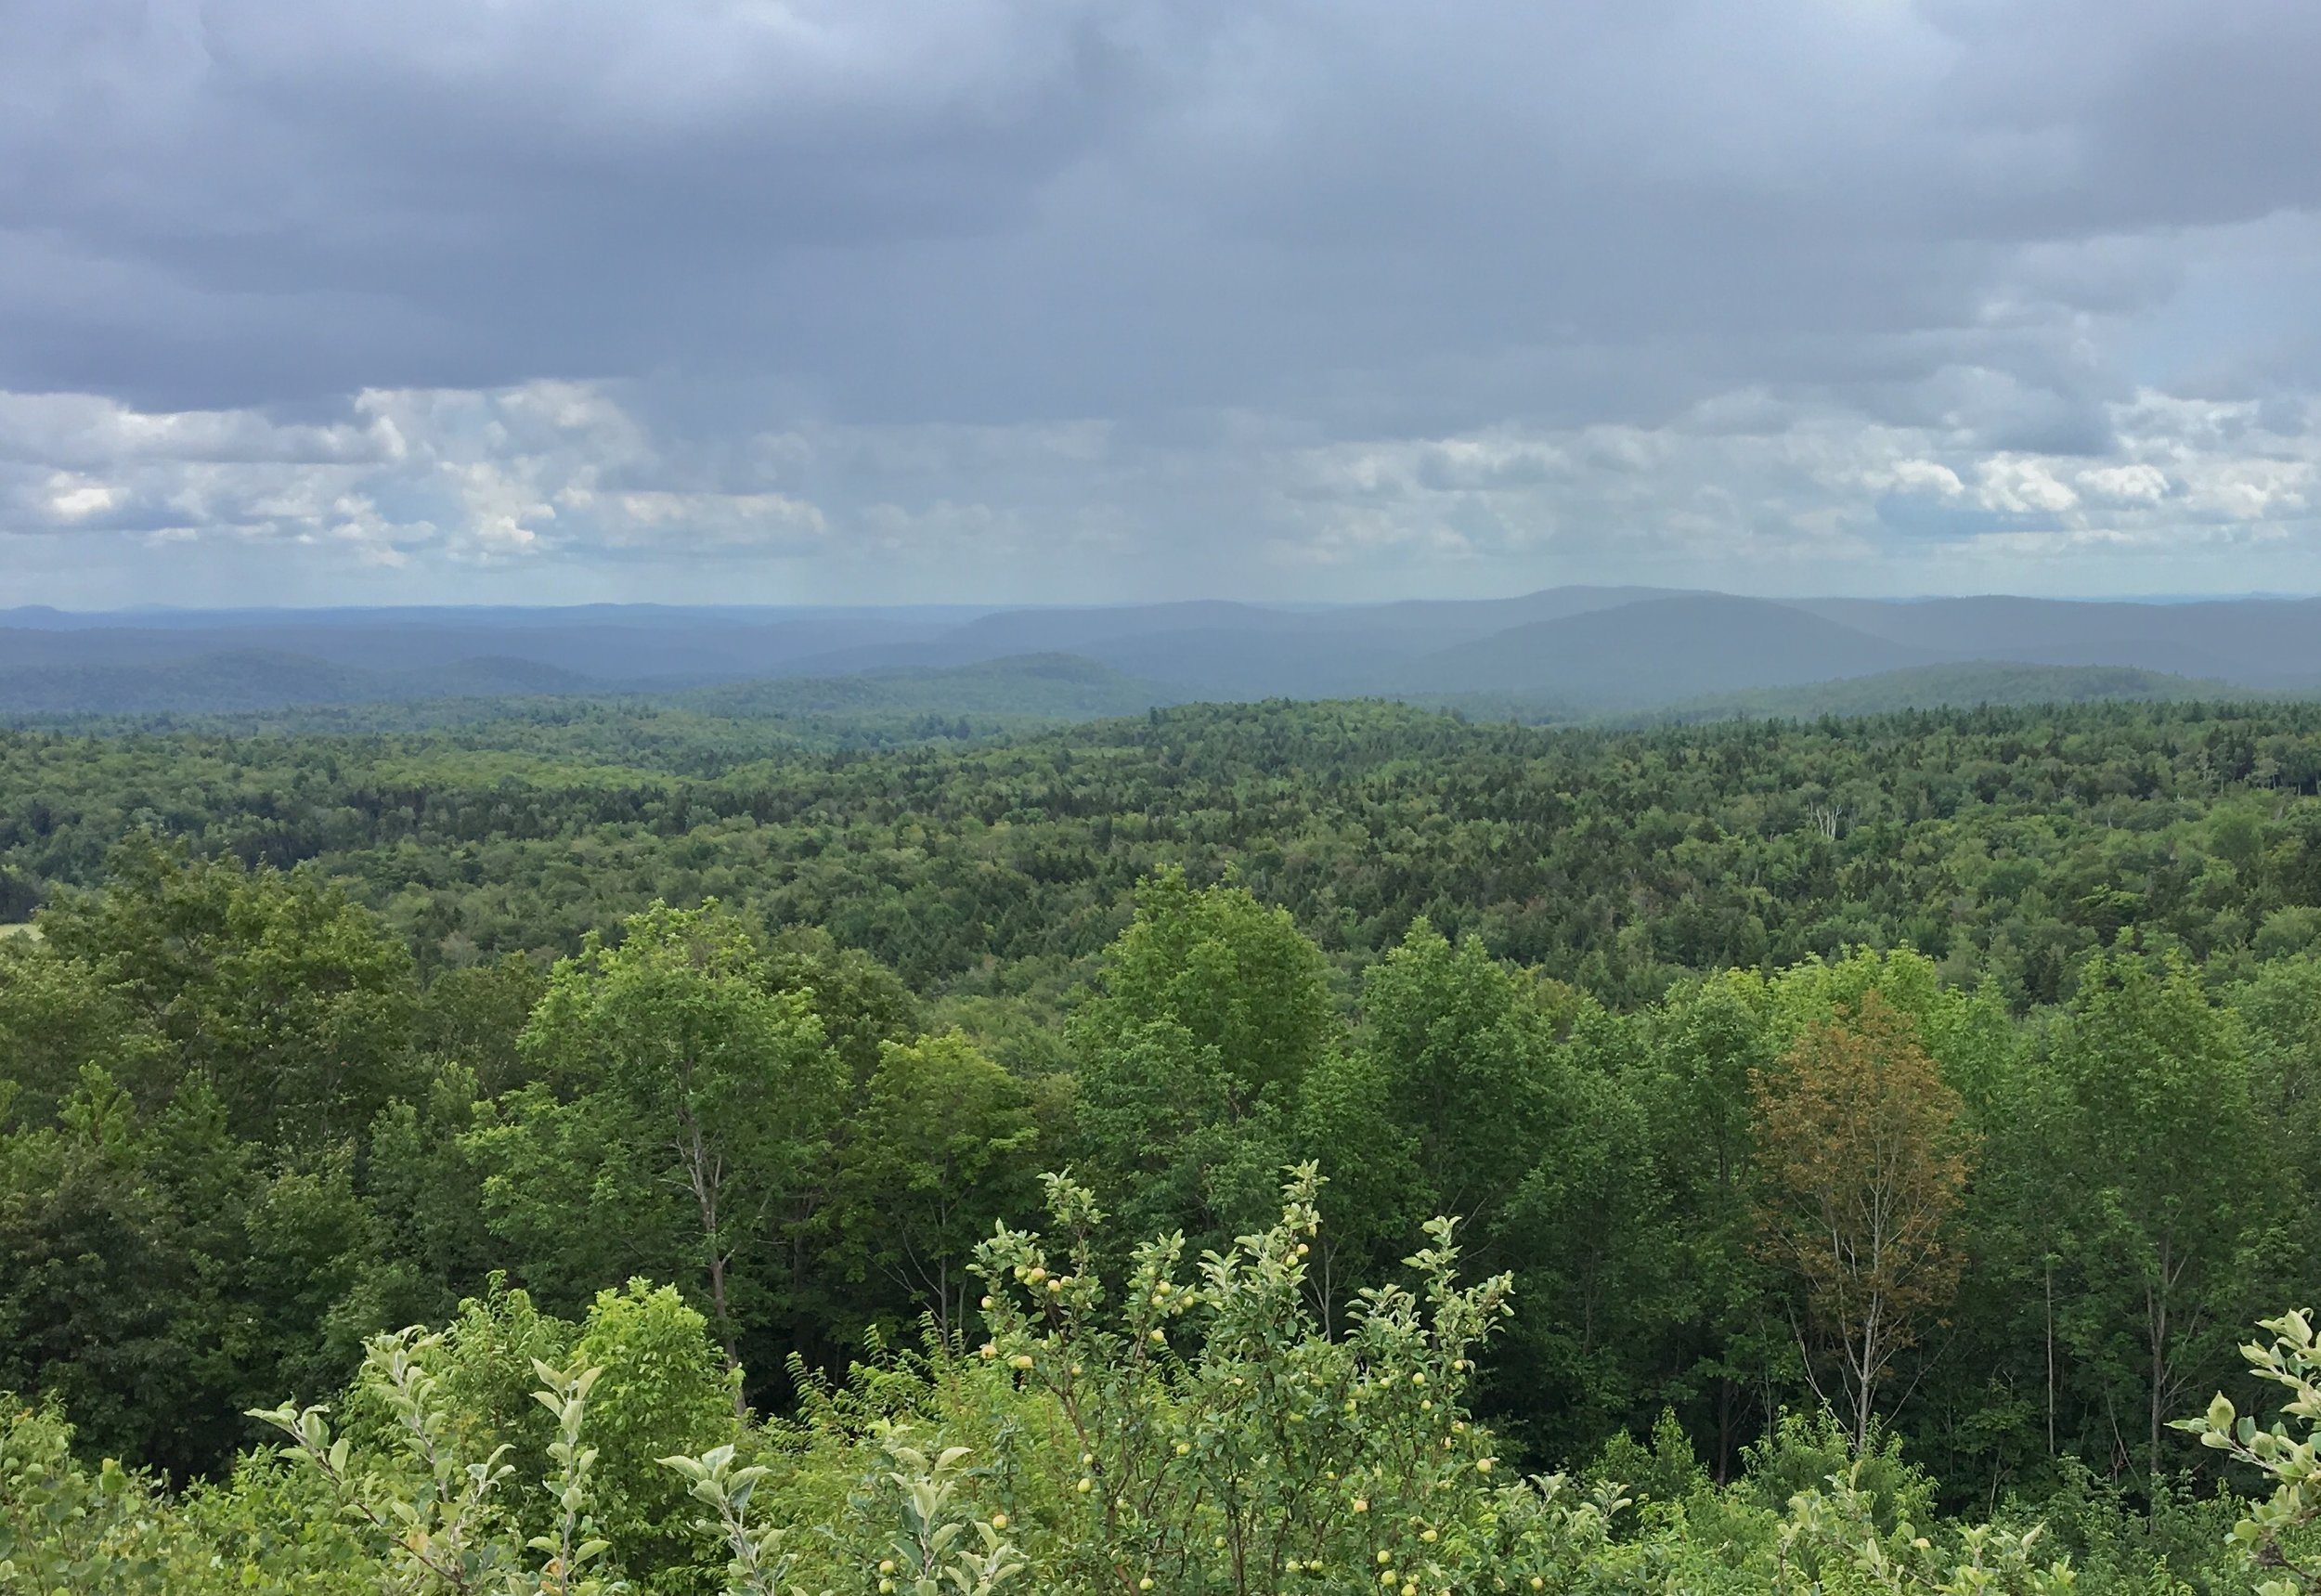 - The view from Hogback Mountain, about two-thirds of the way across Vermont, where one can see New Hampshire to the east (roughly straight ahead in the photo I think) and Massachusetts to the south.